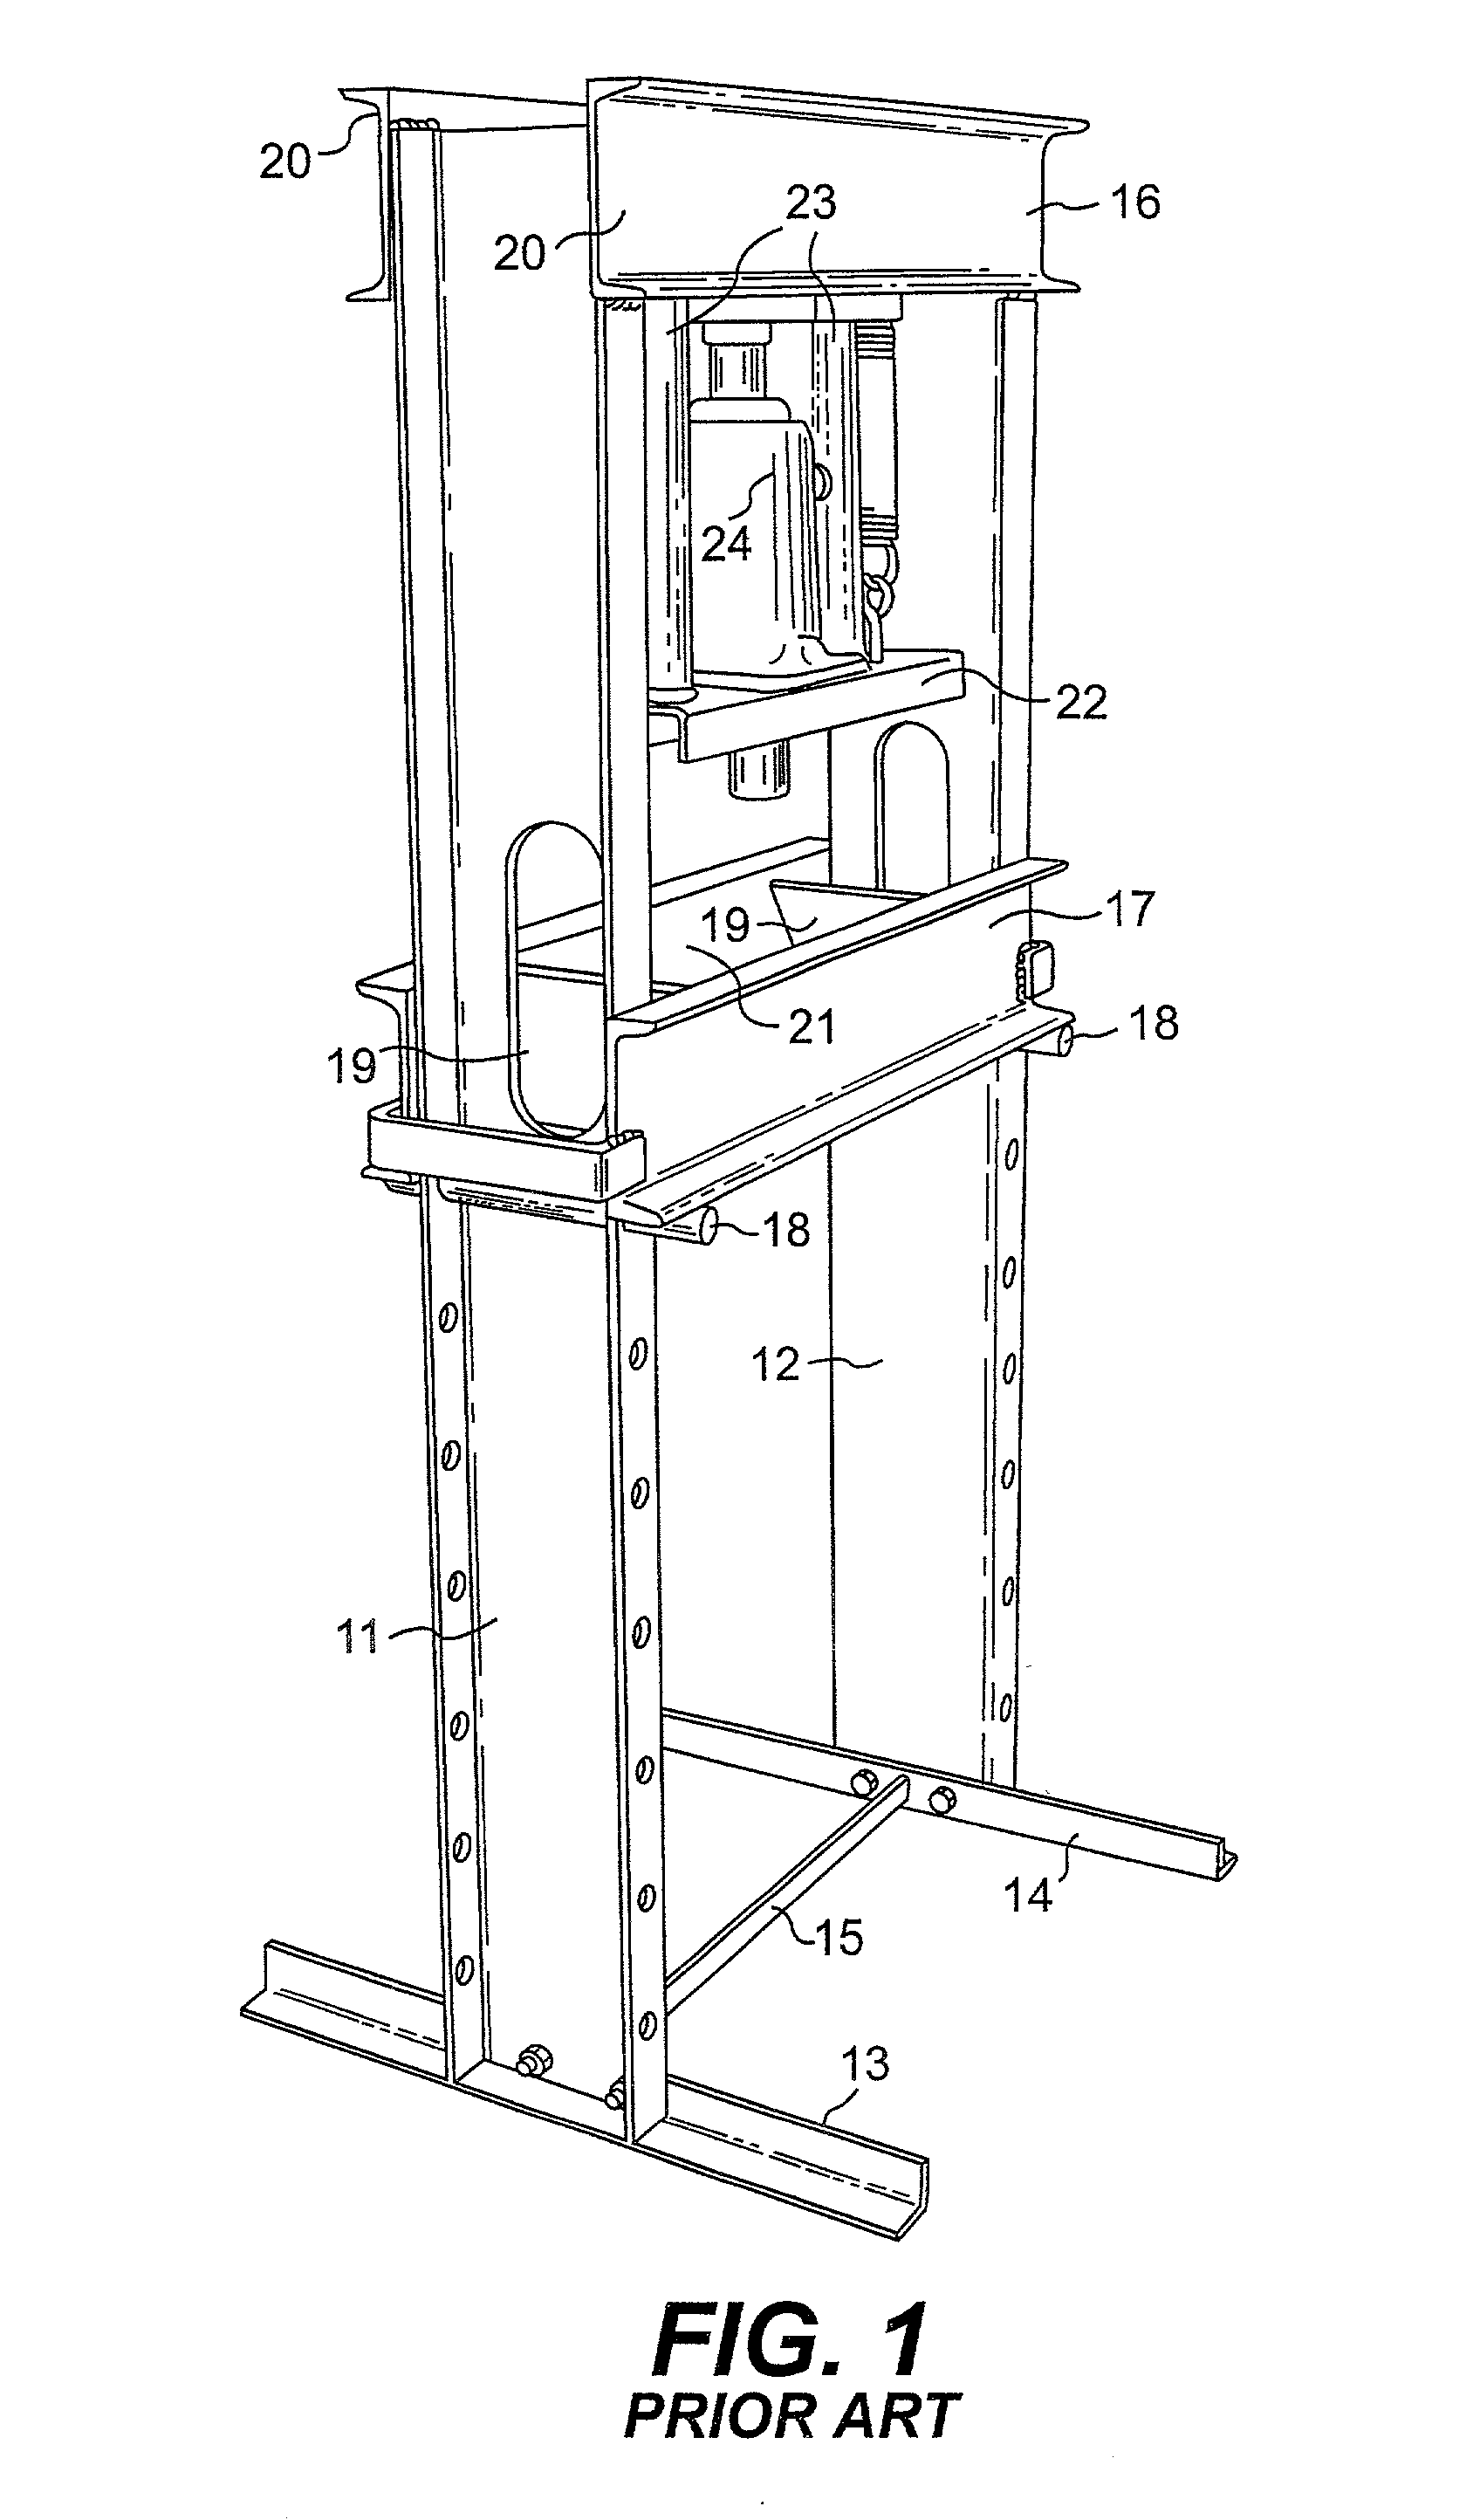 Us20020046661a1 Hydraulic Press Google Patents Metal Working Tools Welding Table Metal Working